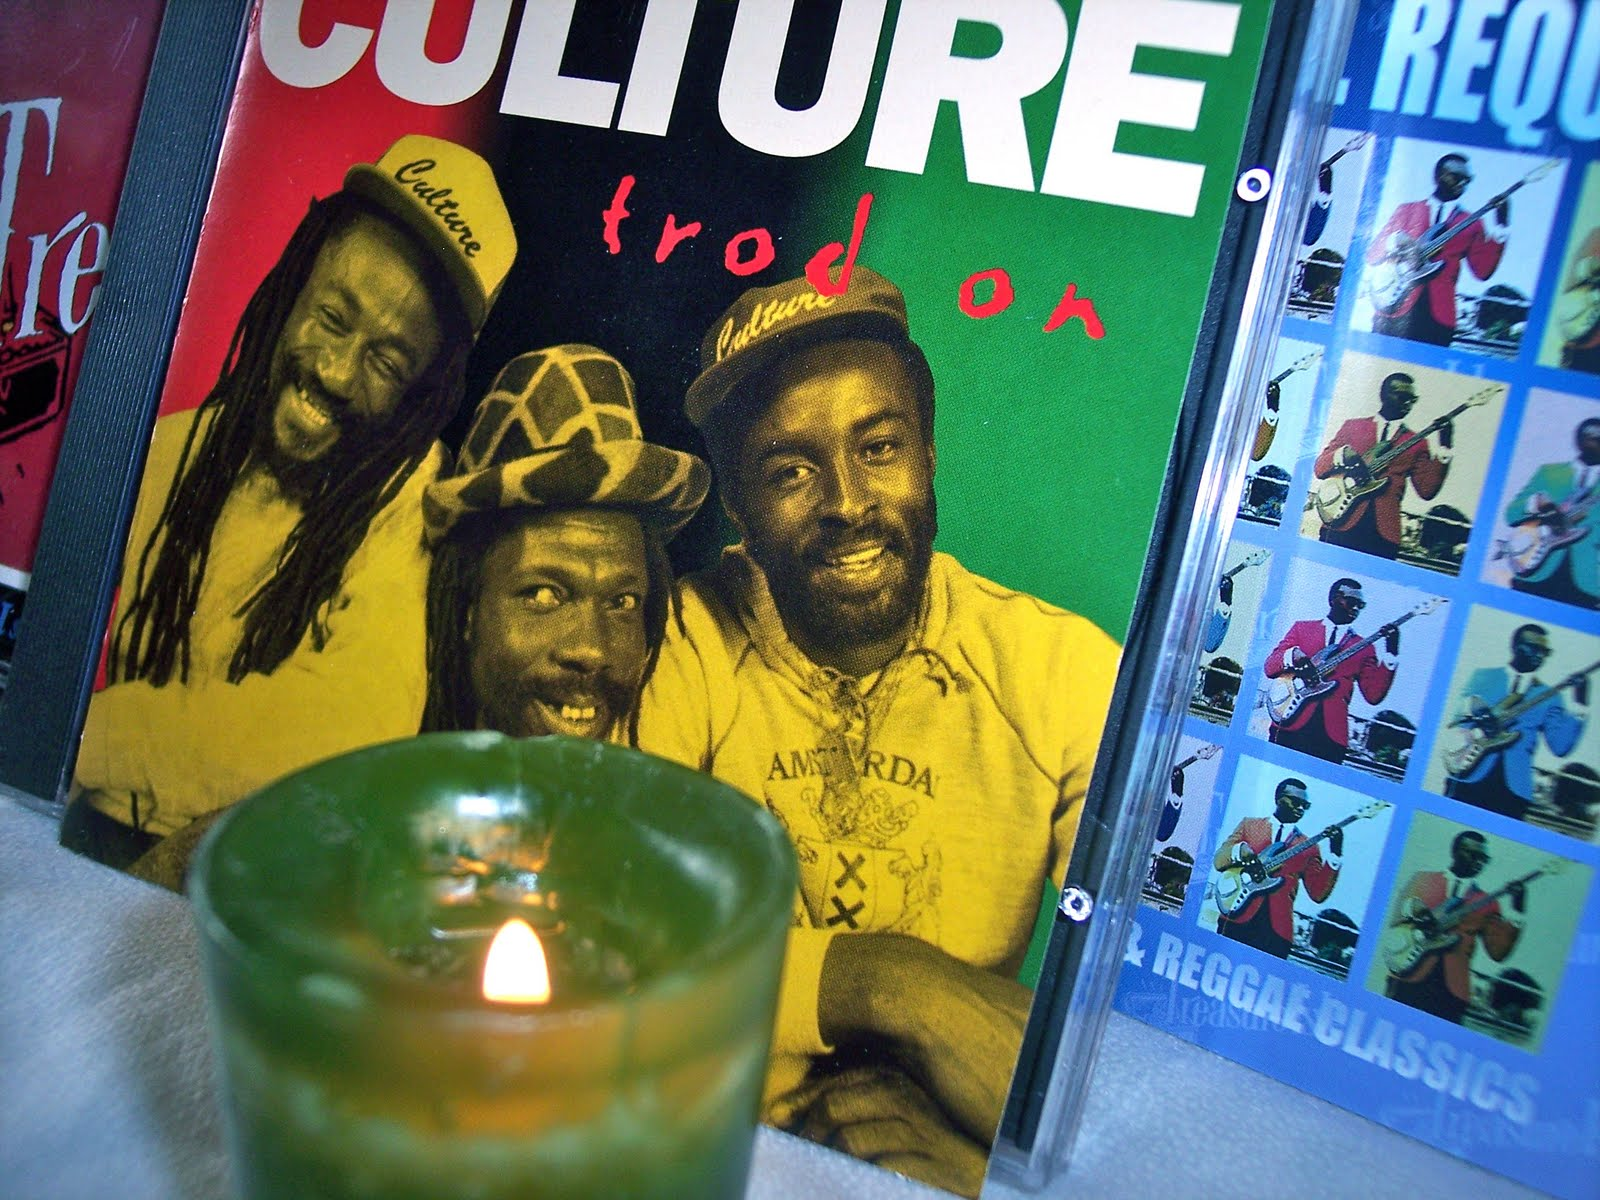 from Maison gay reggae fans